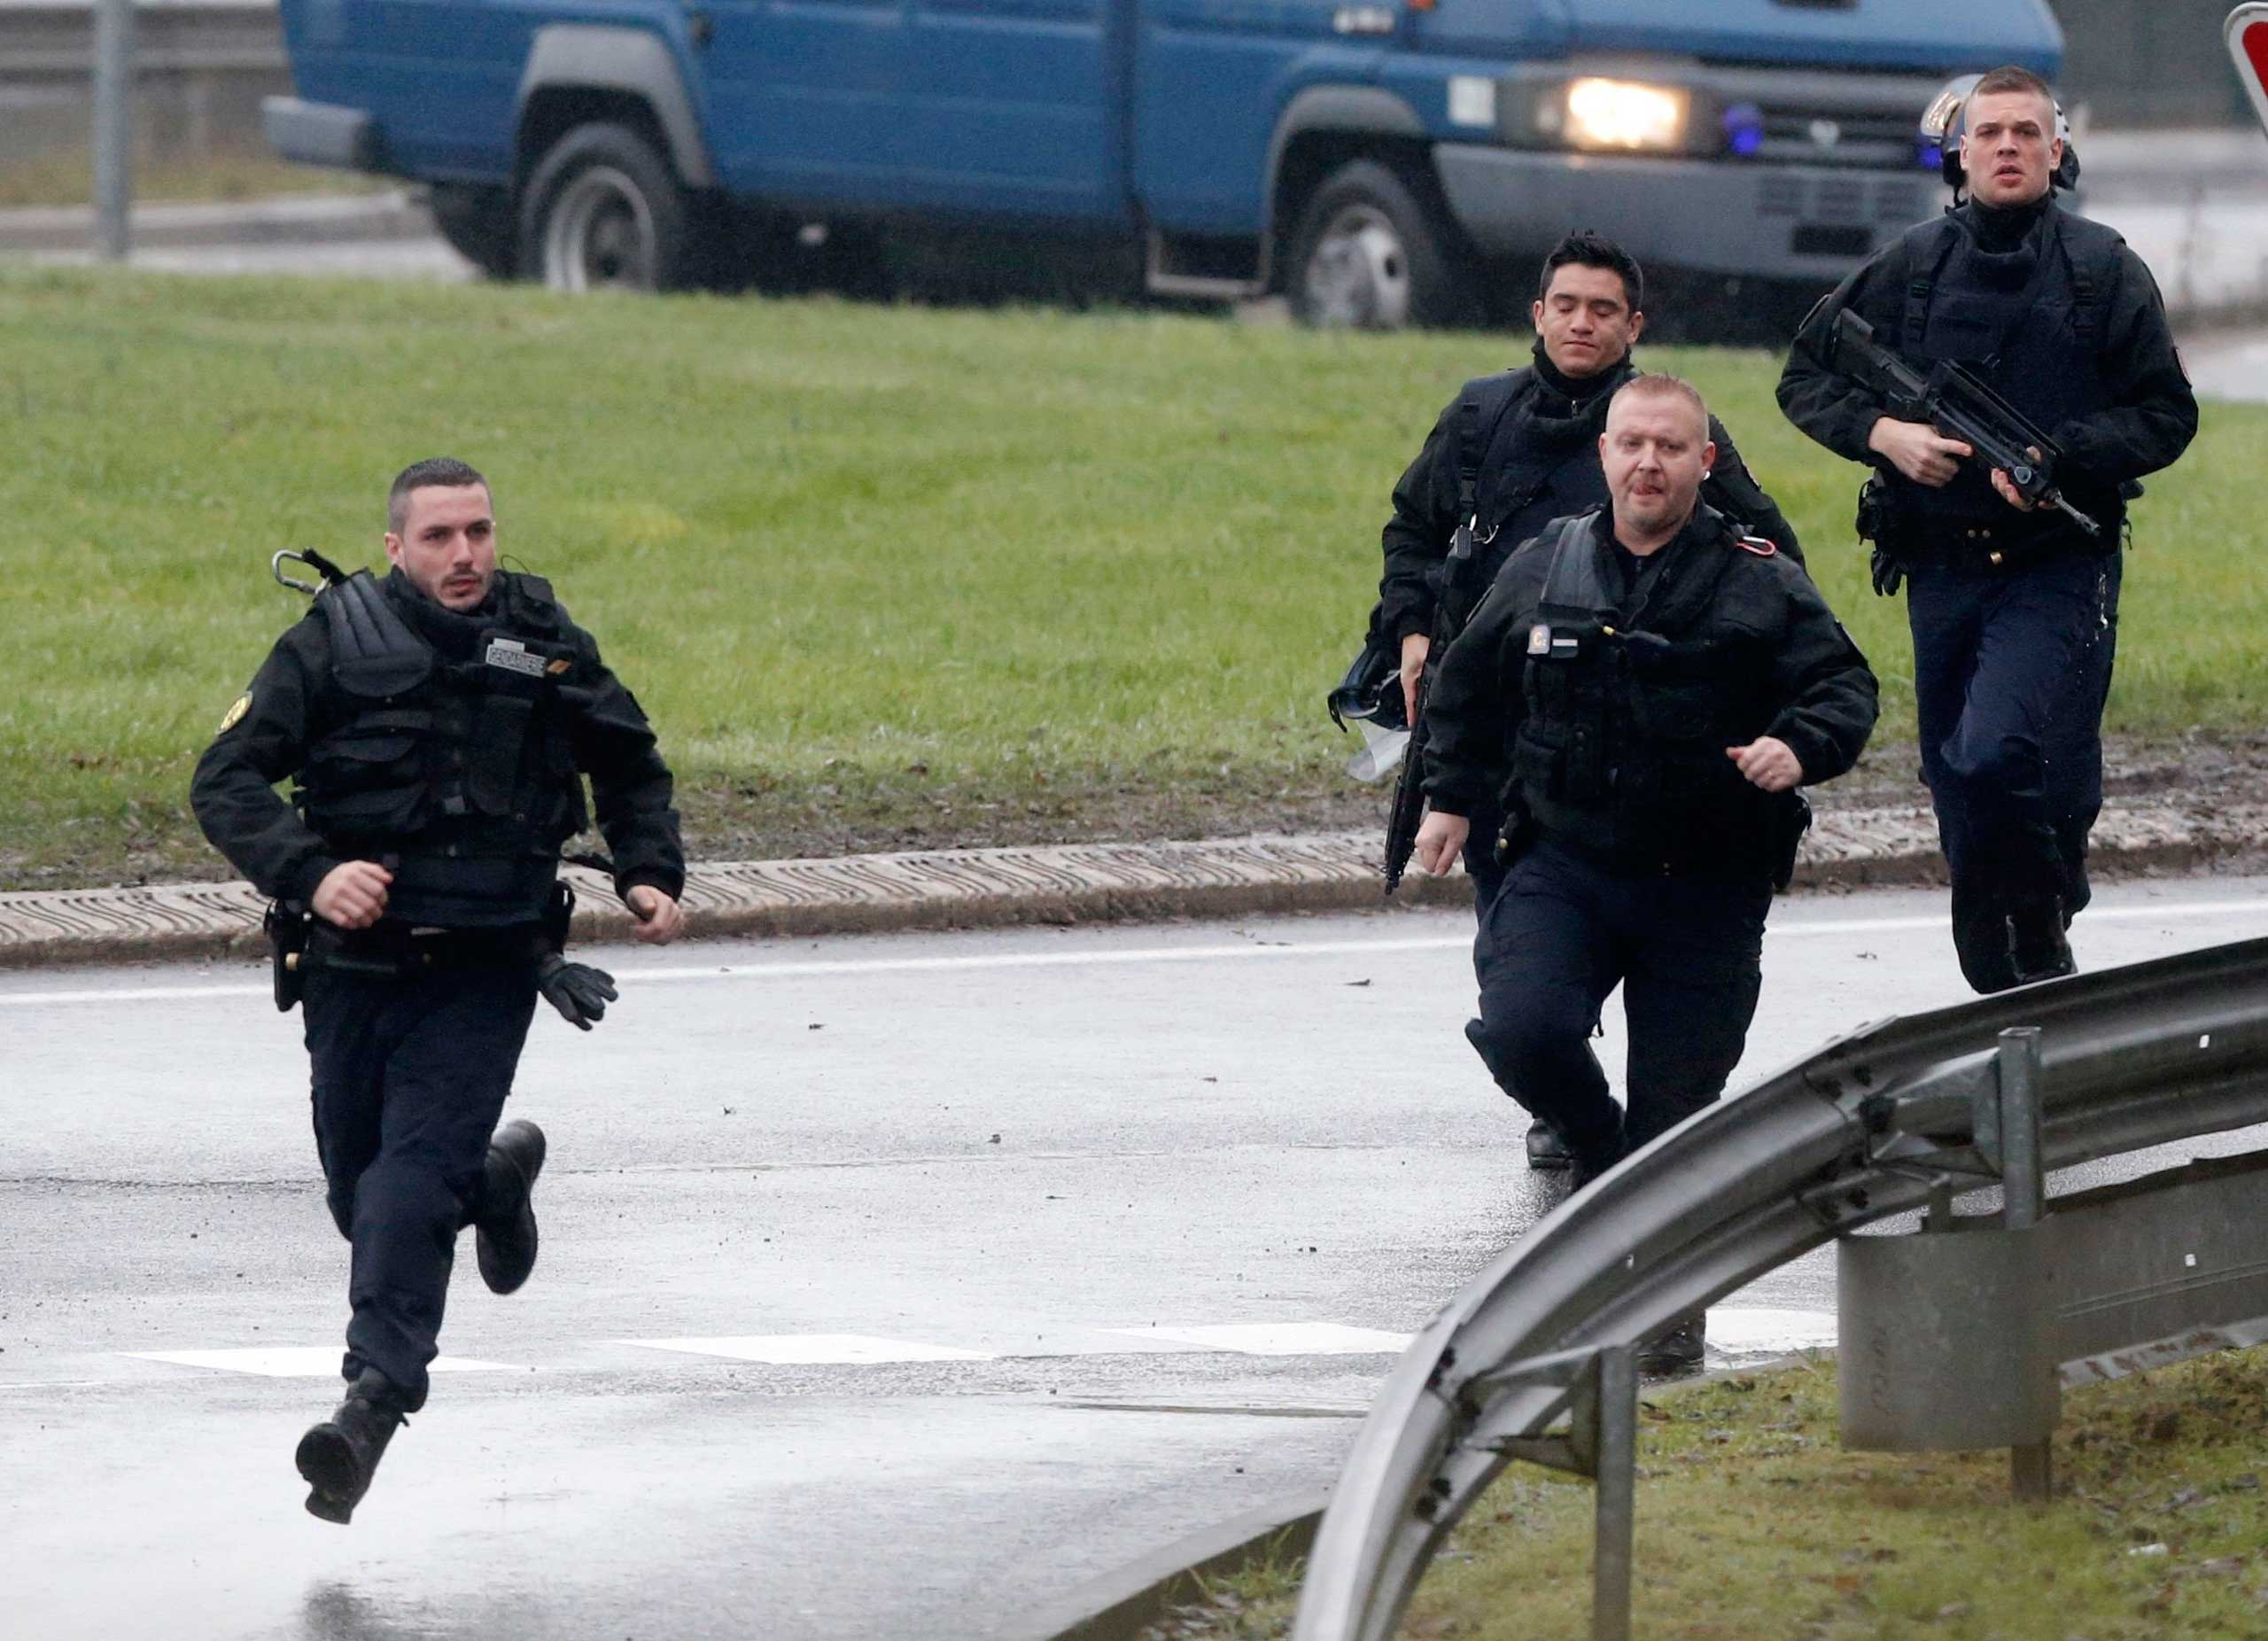 Members of the French gendarmerie intervention forces arrive at the scene of a hostage taking at an industrial zone in Dammartin-en-Goele, northeast of Paris, Jan. 9, 2015.